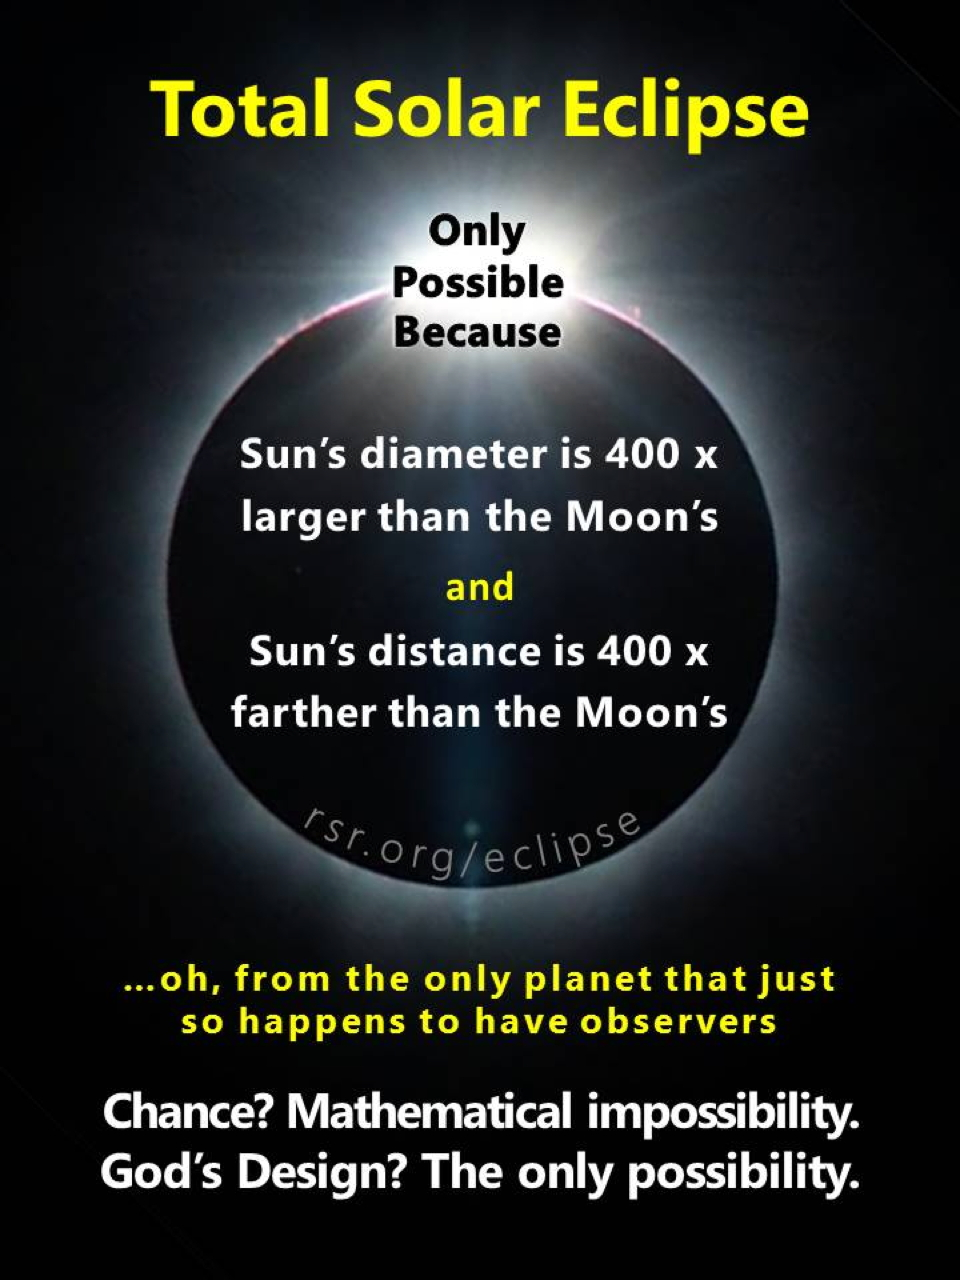 Total solar eclipse: How's it possible? RSR meme